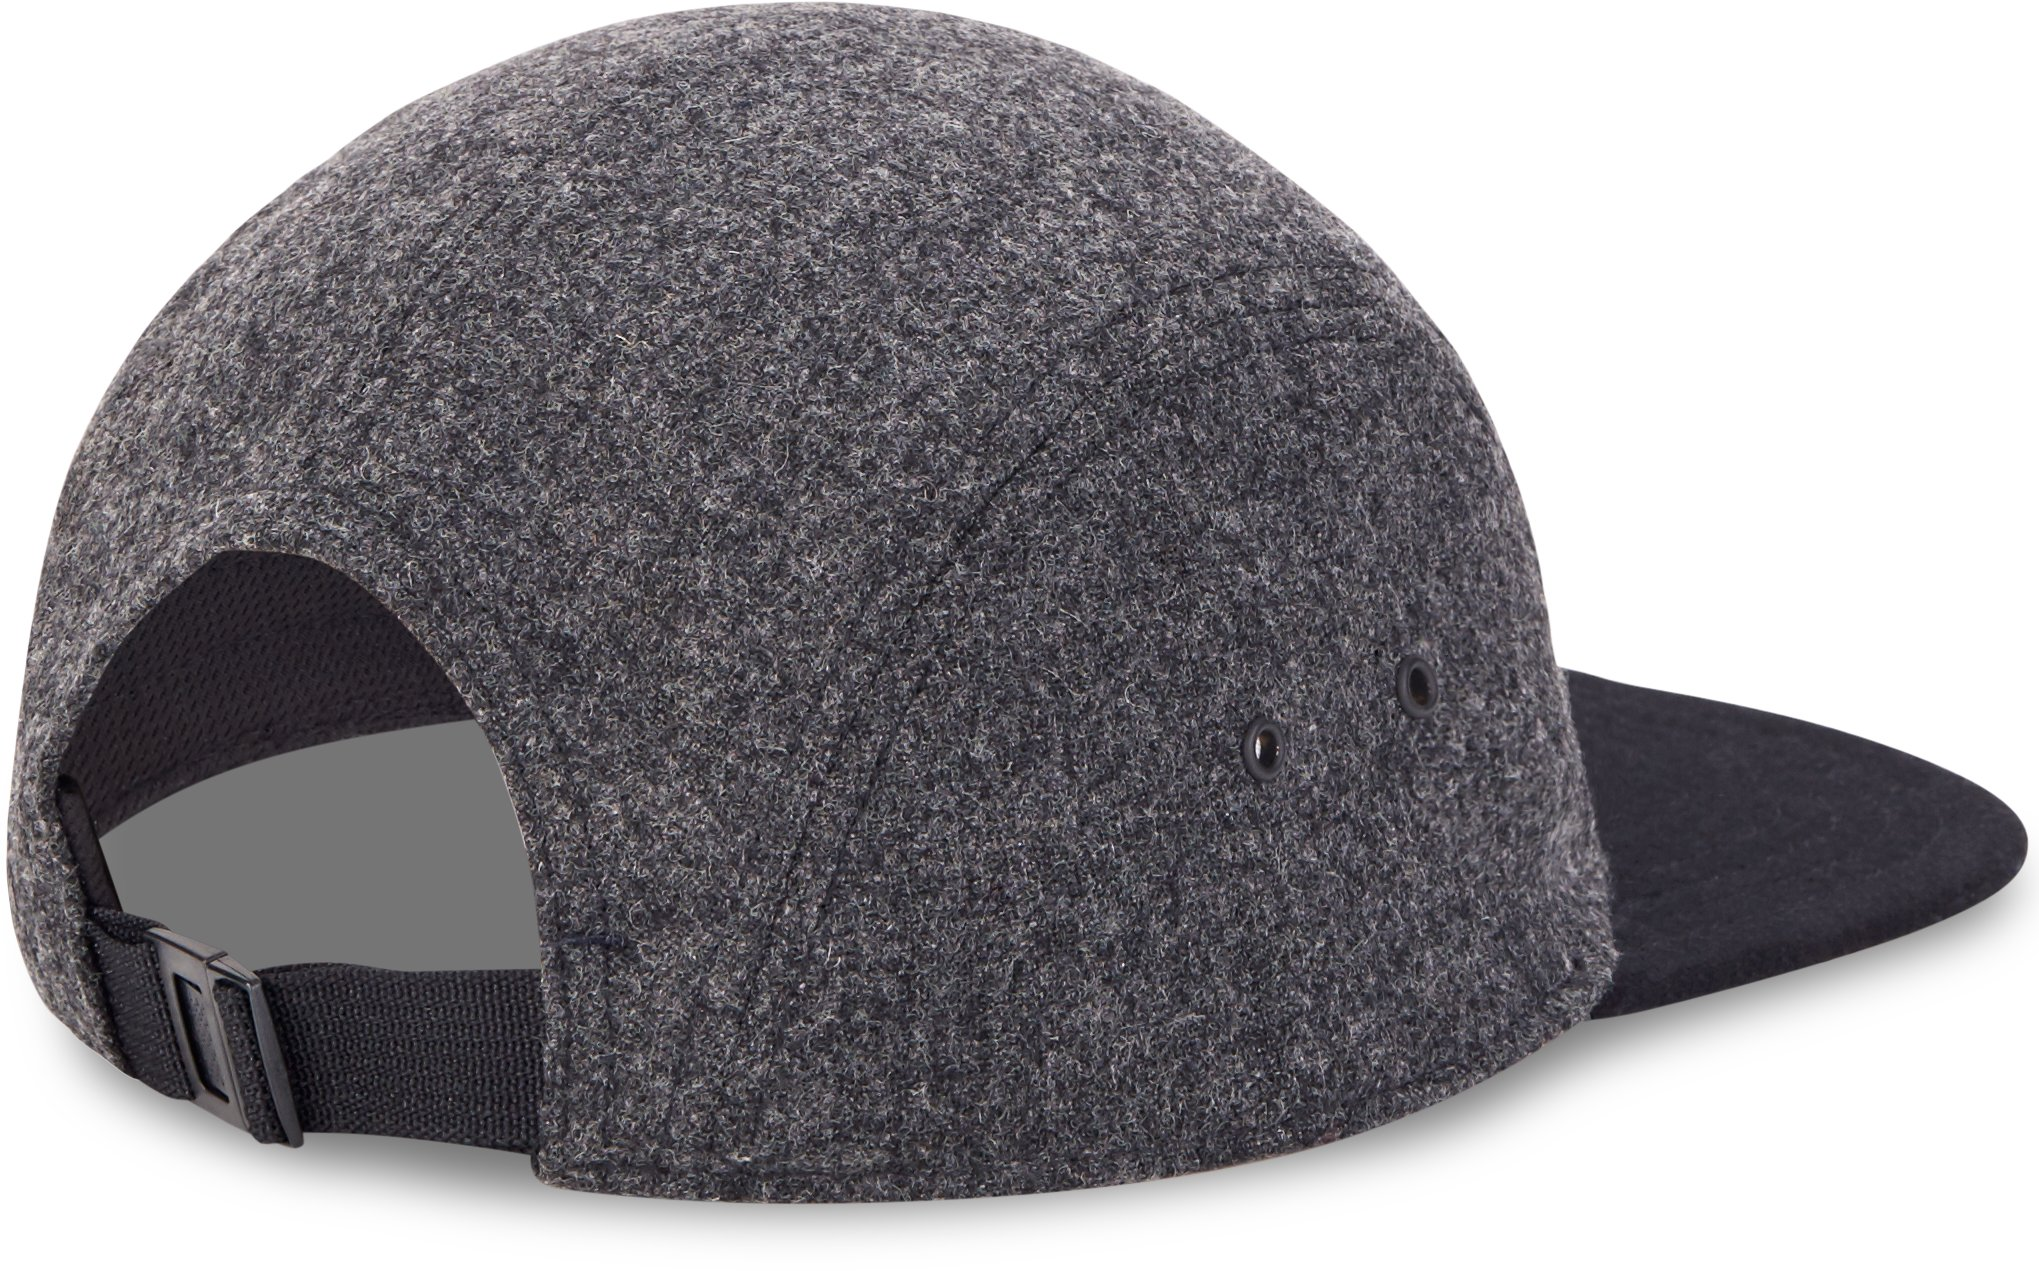 Men's UAS Fundamentals 5-Panel Flannel Cap, DARK HEATHER GRAY, undefined